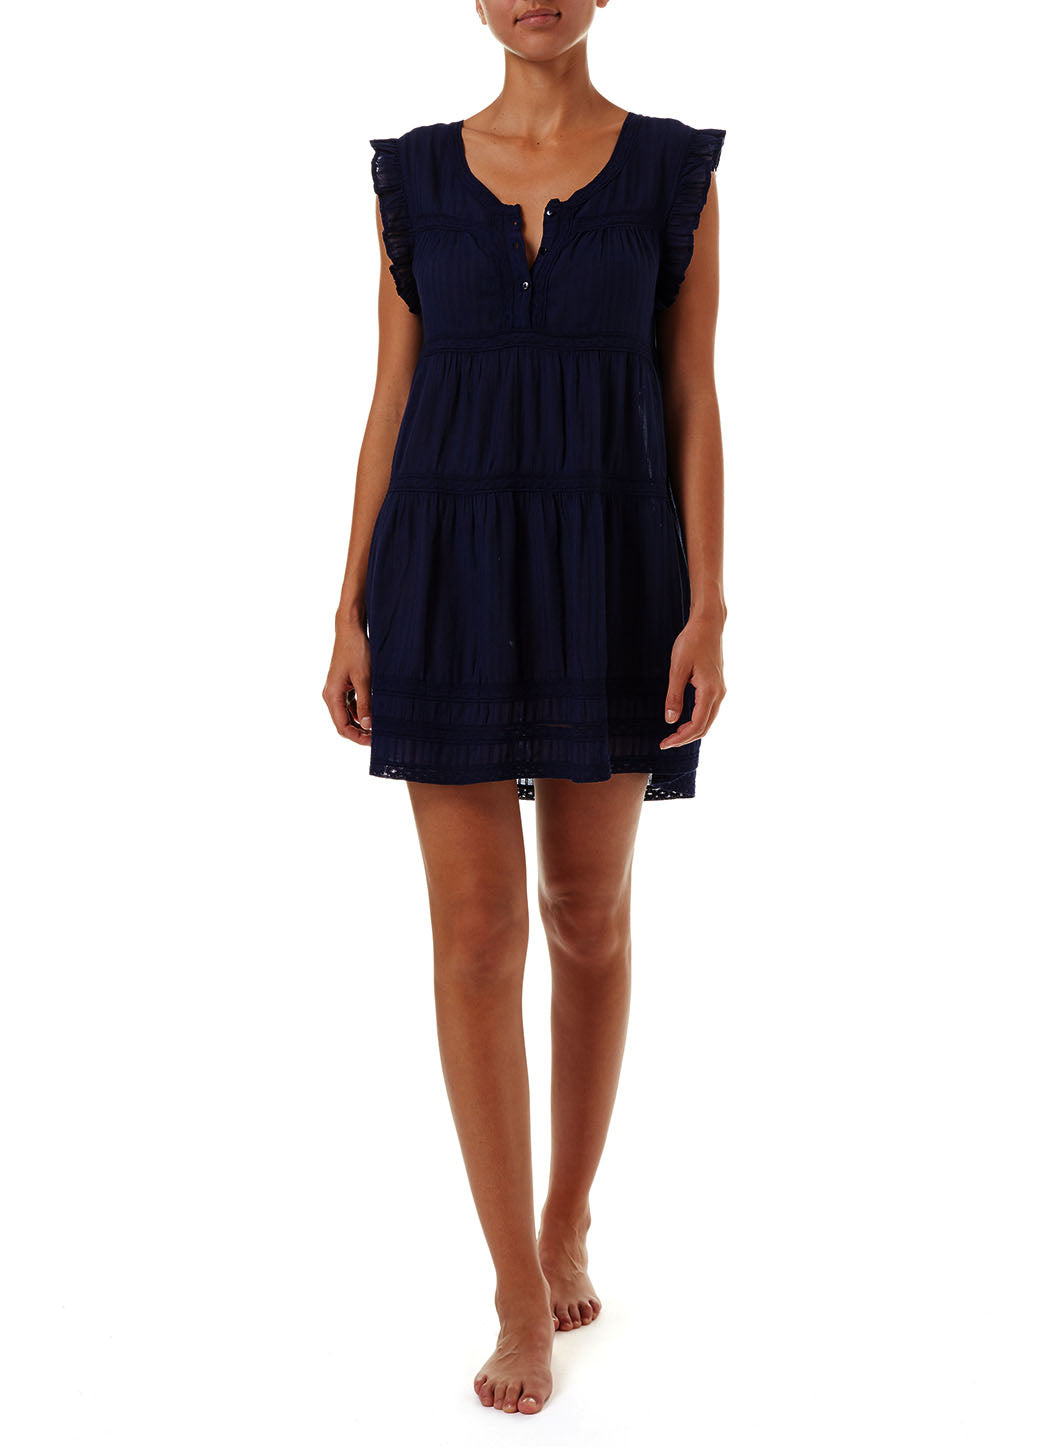 Rebekah Navy Button-Front Short Dress - Melissa Odabash Dresses & Kaftans